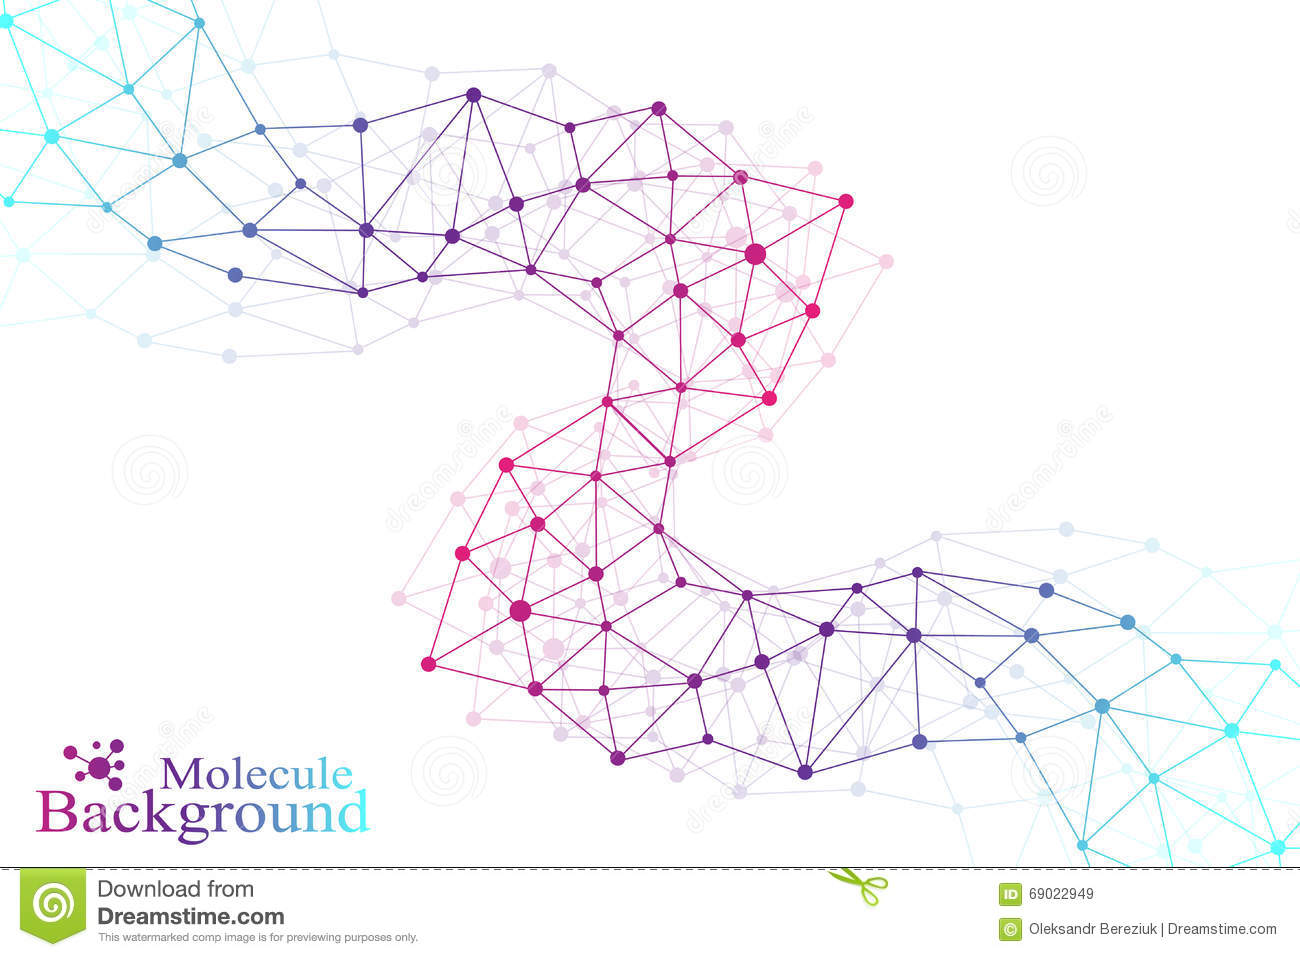 Colorful graphic background molecule and communication. Connected lines with dots. Medicine, science, technology design